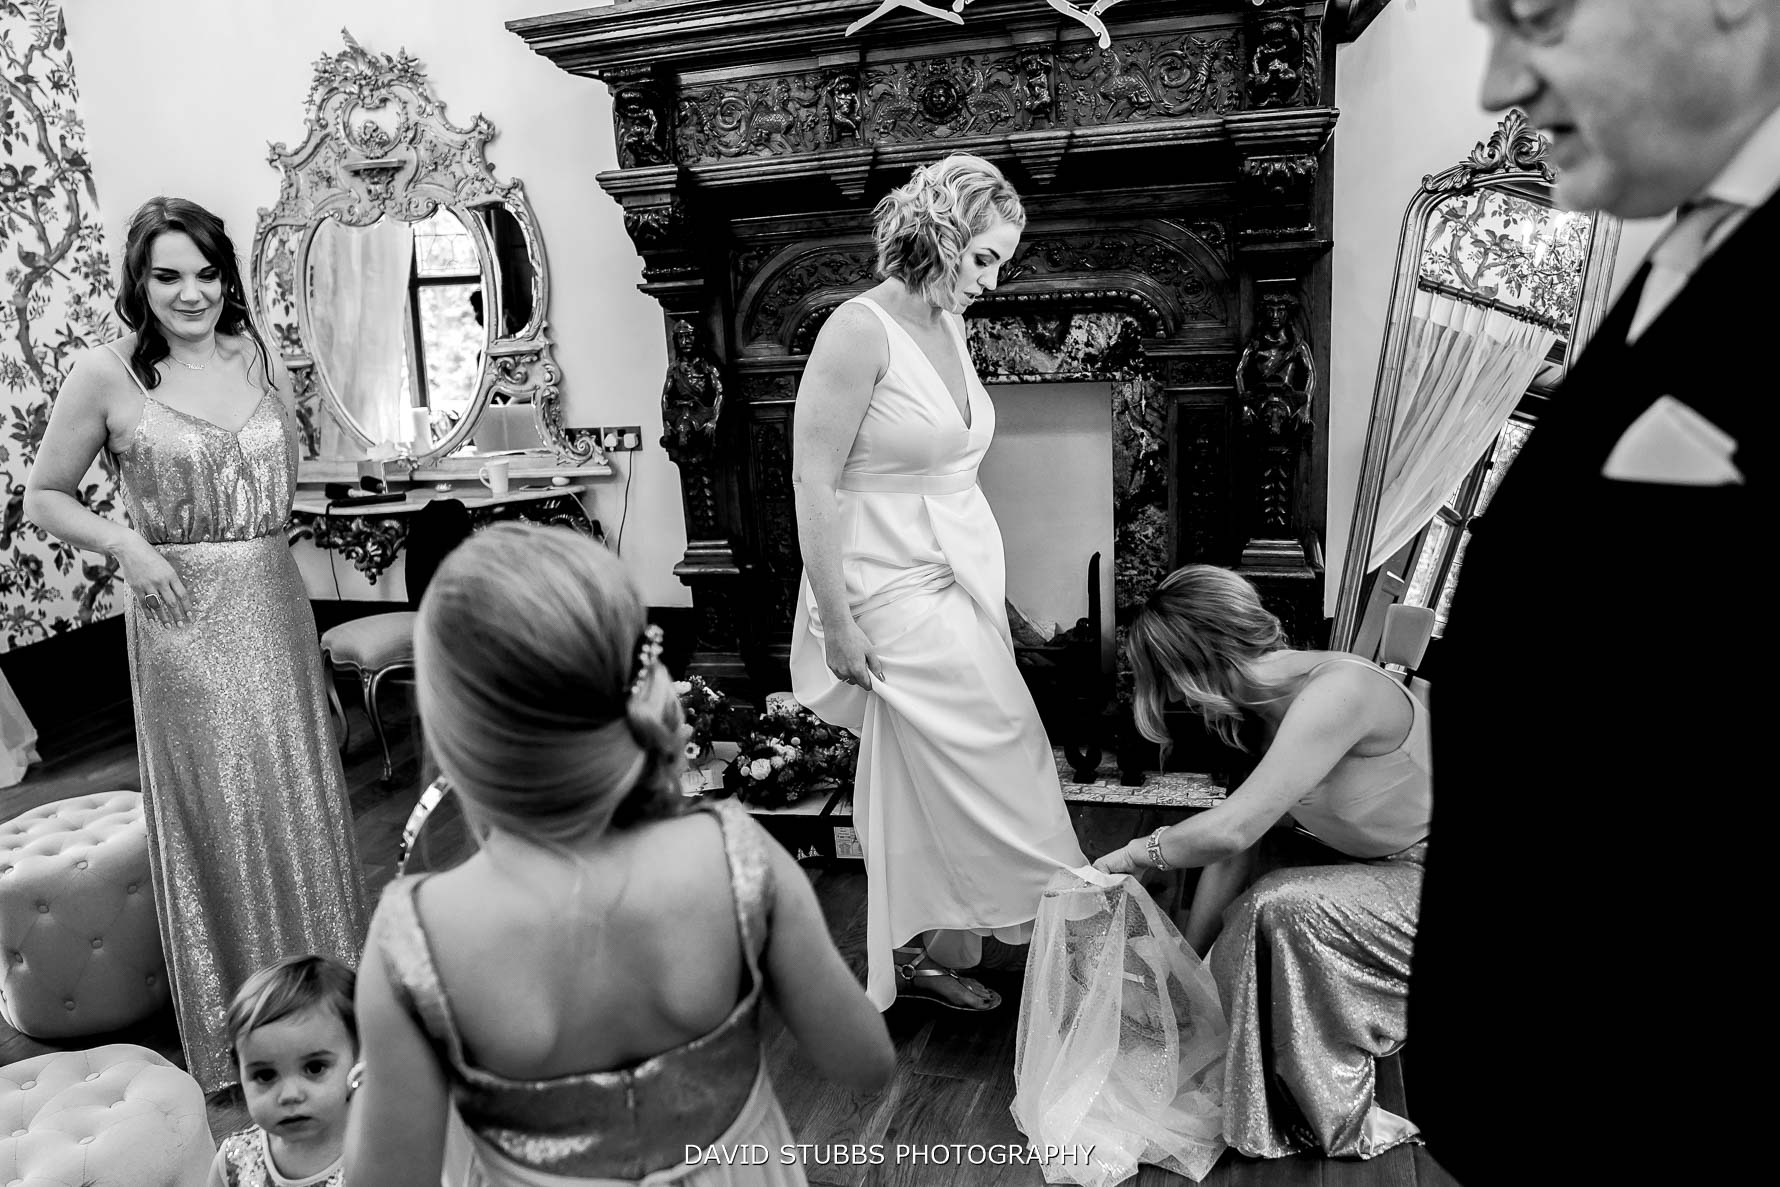 wedding gown now being put on